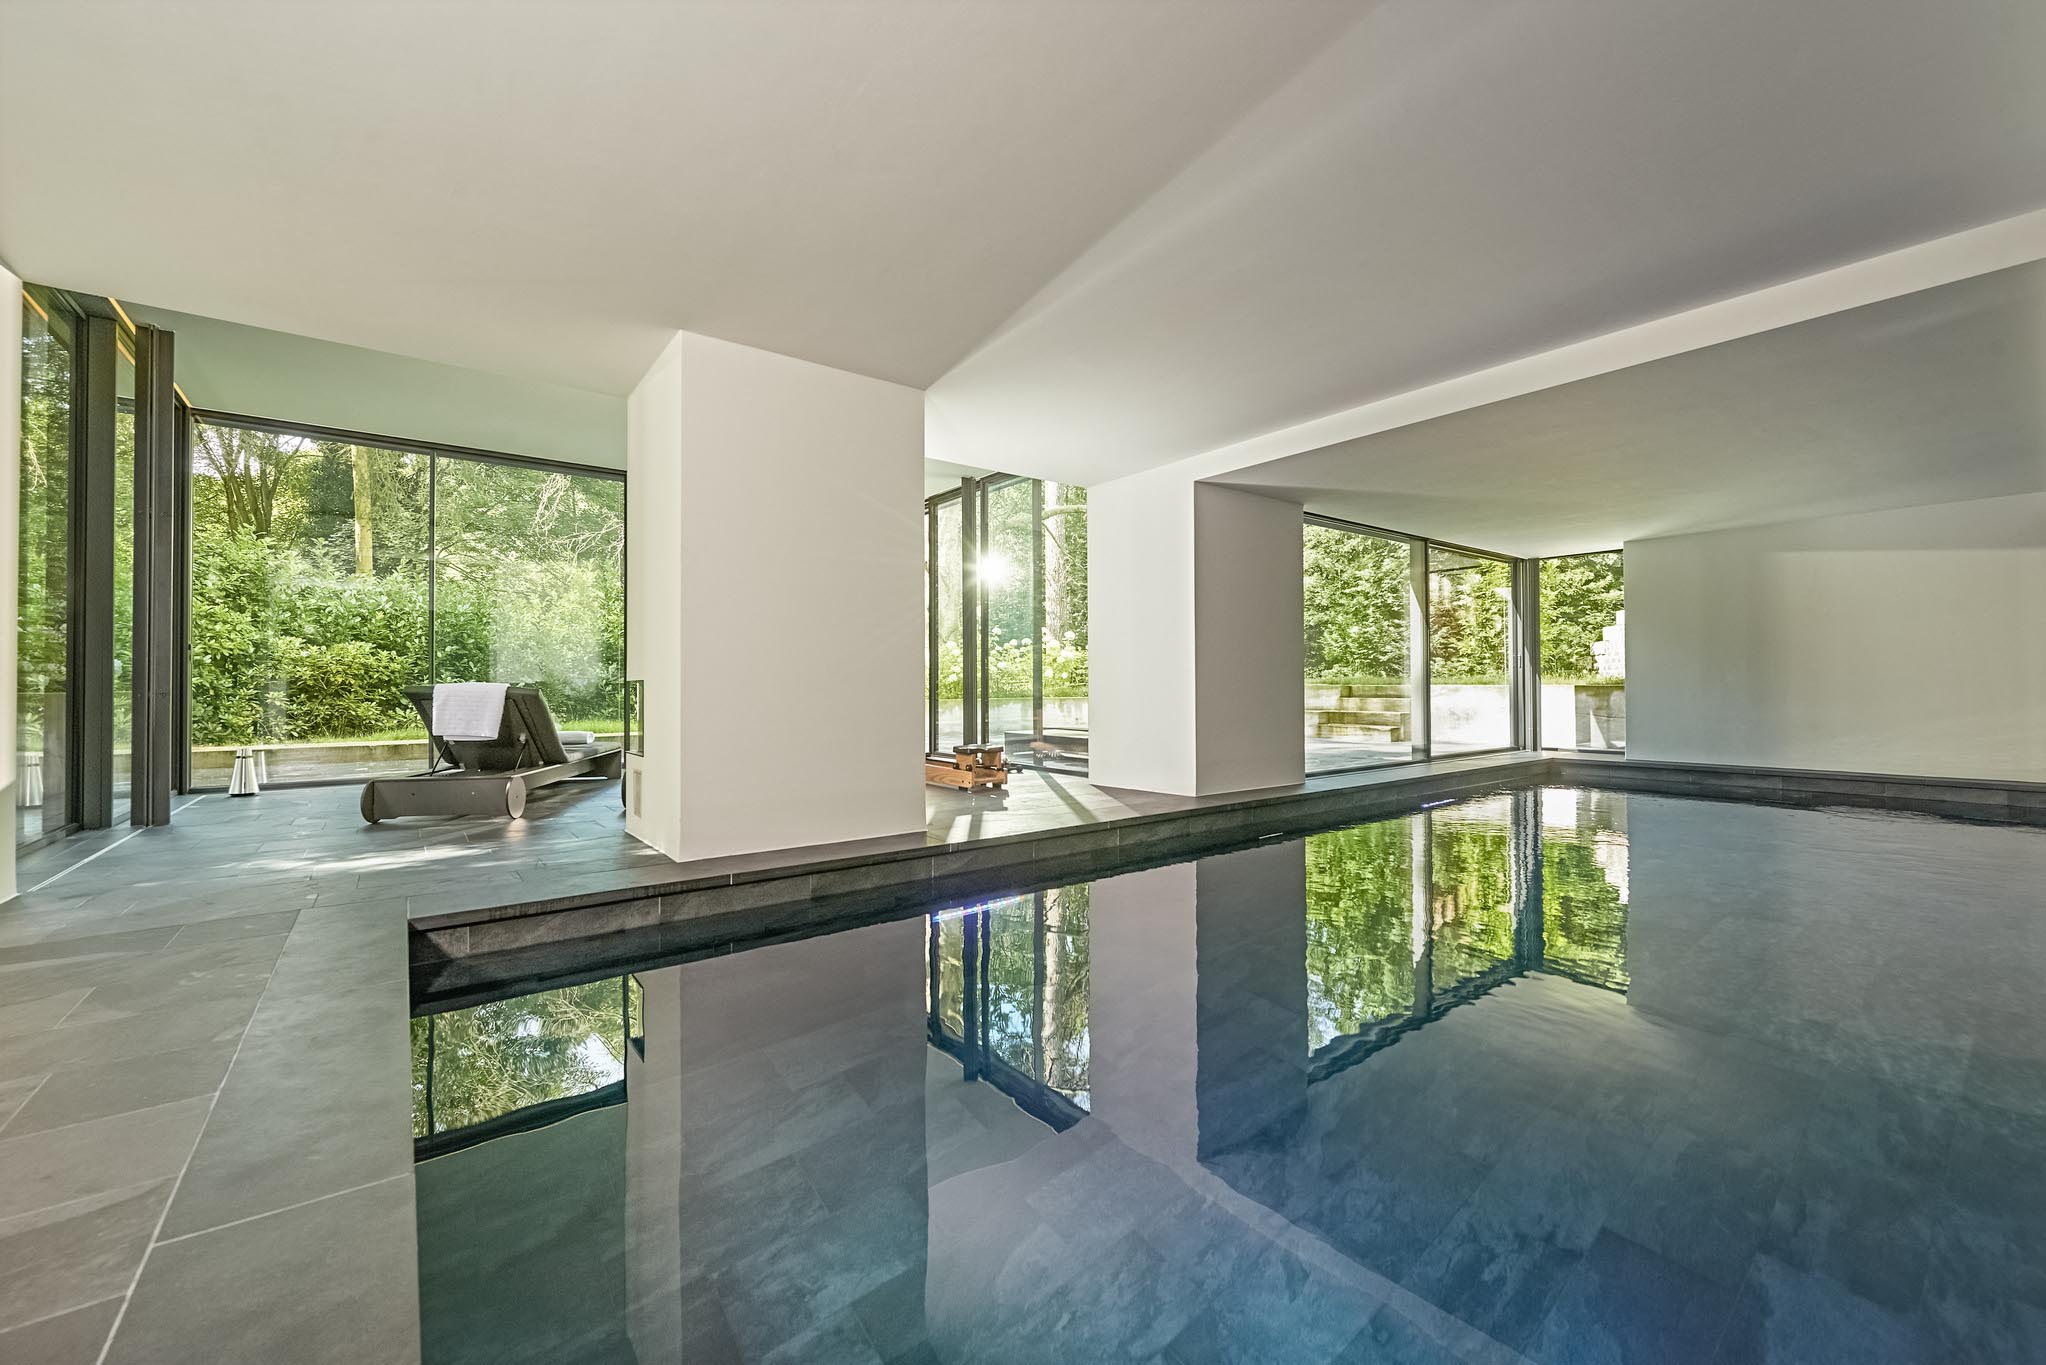 floor to ceiling cero minimal sliding glass walls in pool house